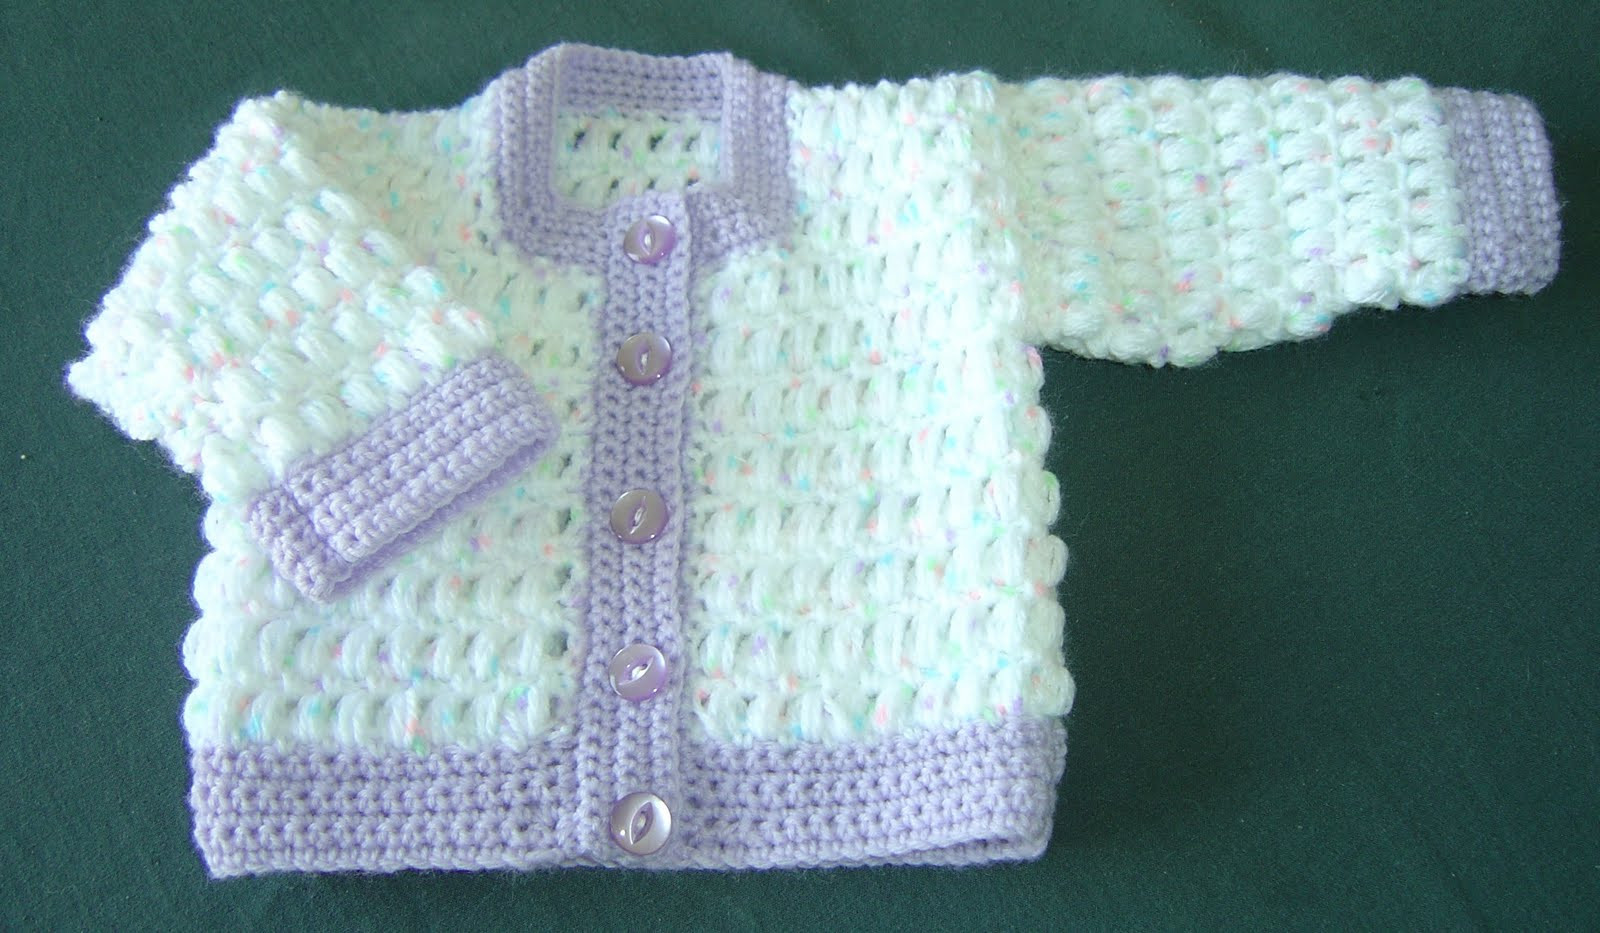 Crochet Baby Cardigan Best Of Enthusiastic Crochetoholic I Can Crochet In Girly Pink Of Amazing 49 Pics Crochet Baby Cardigan